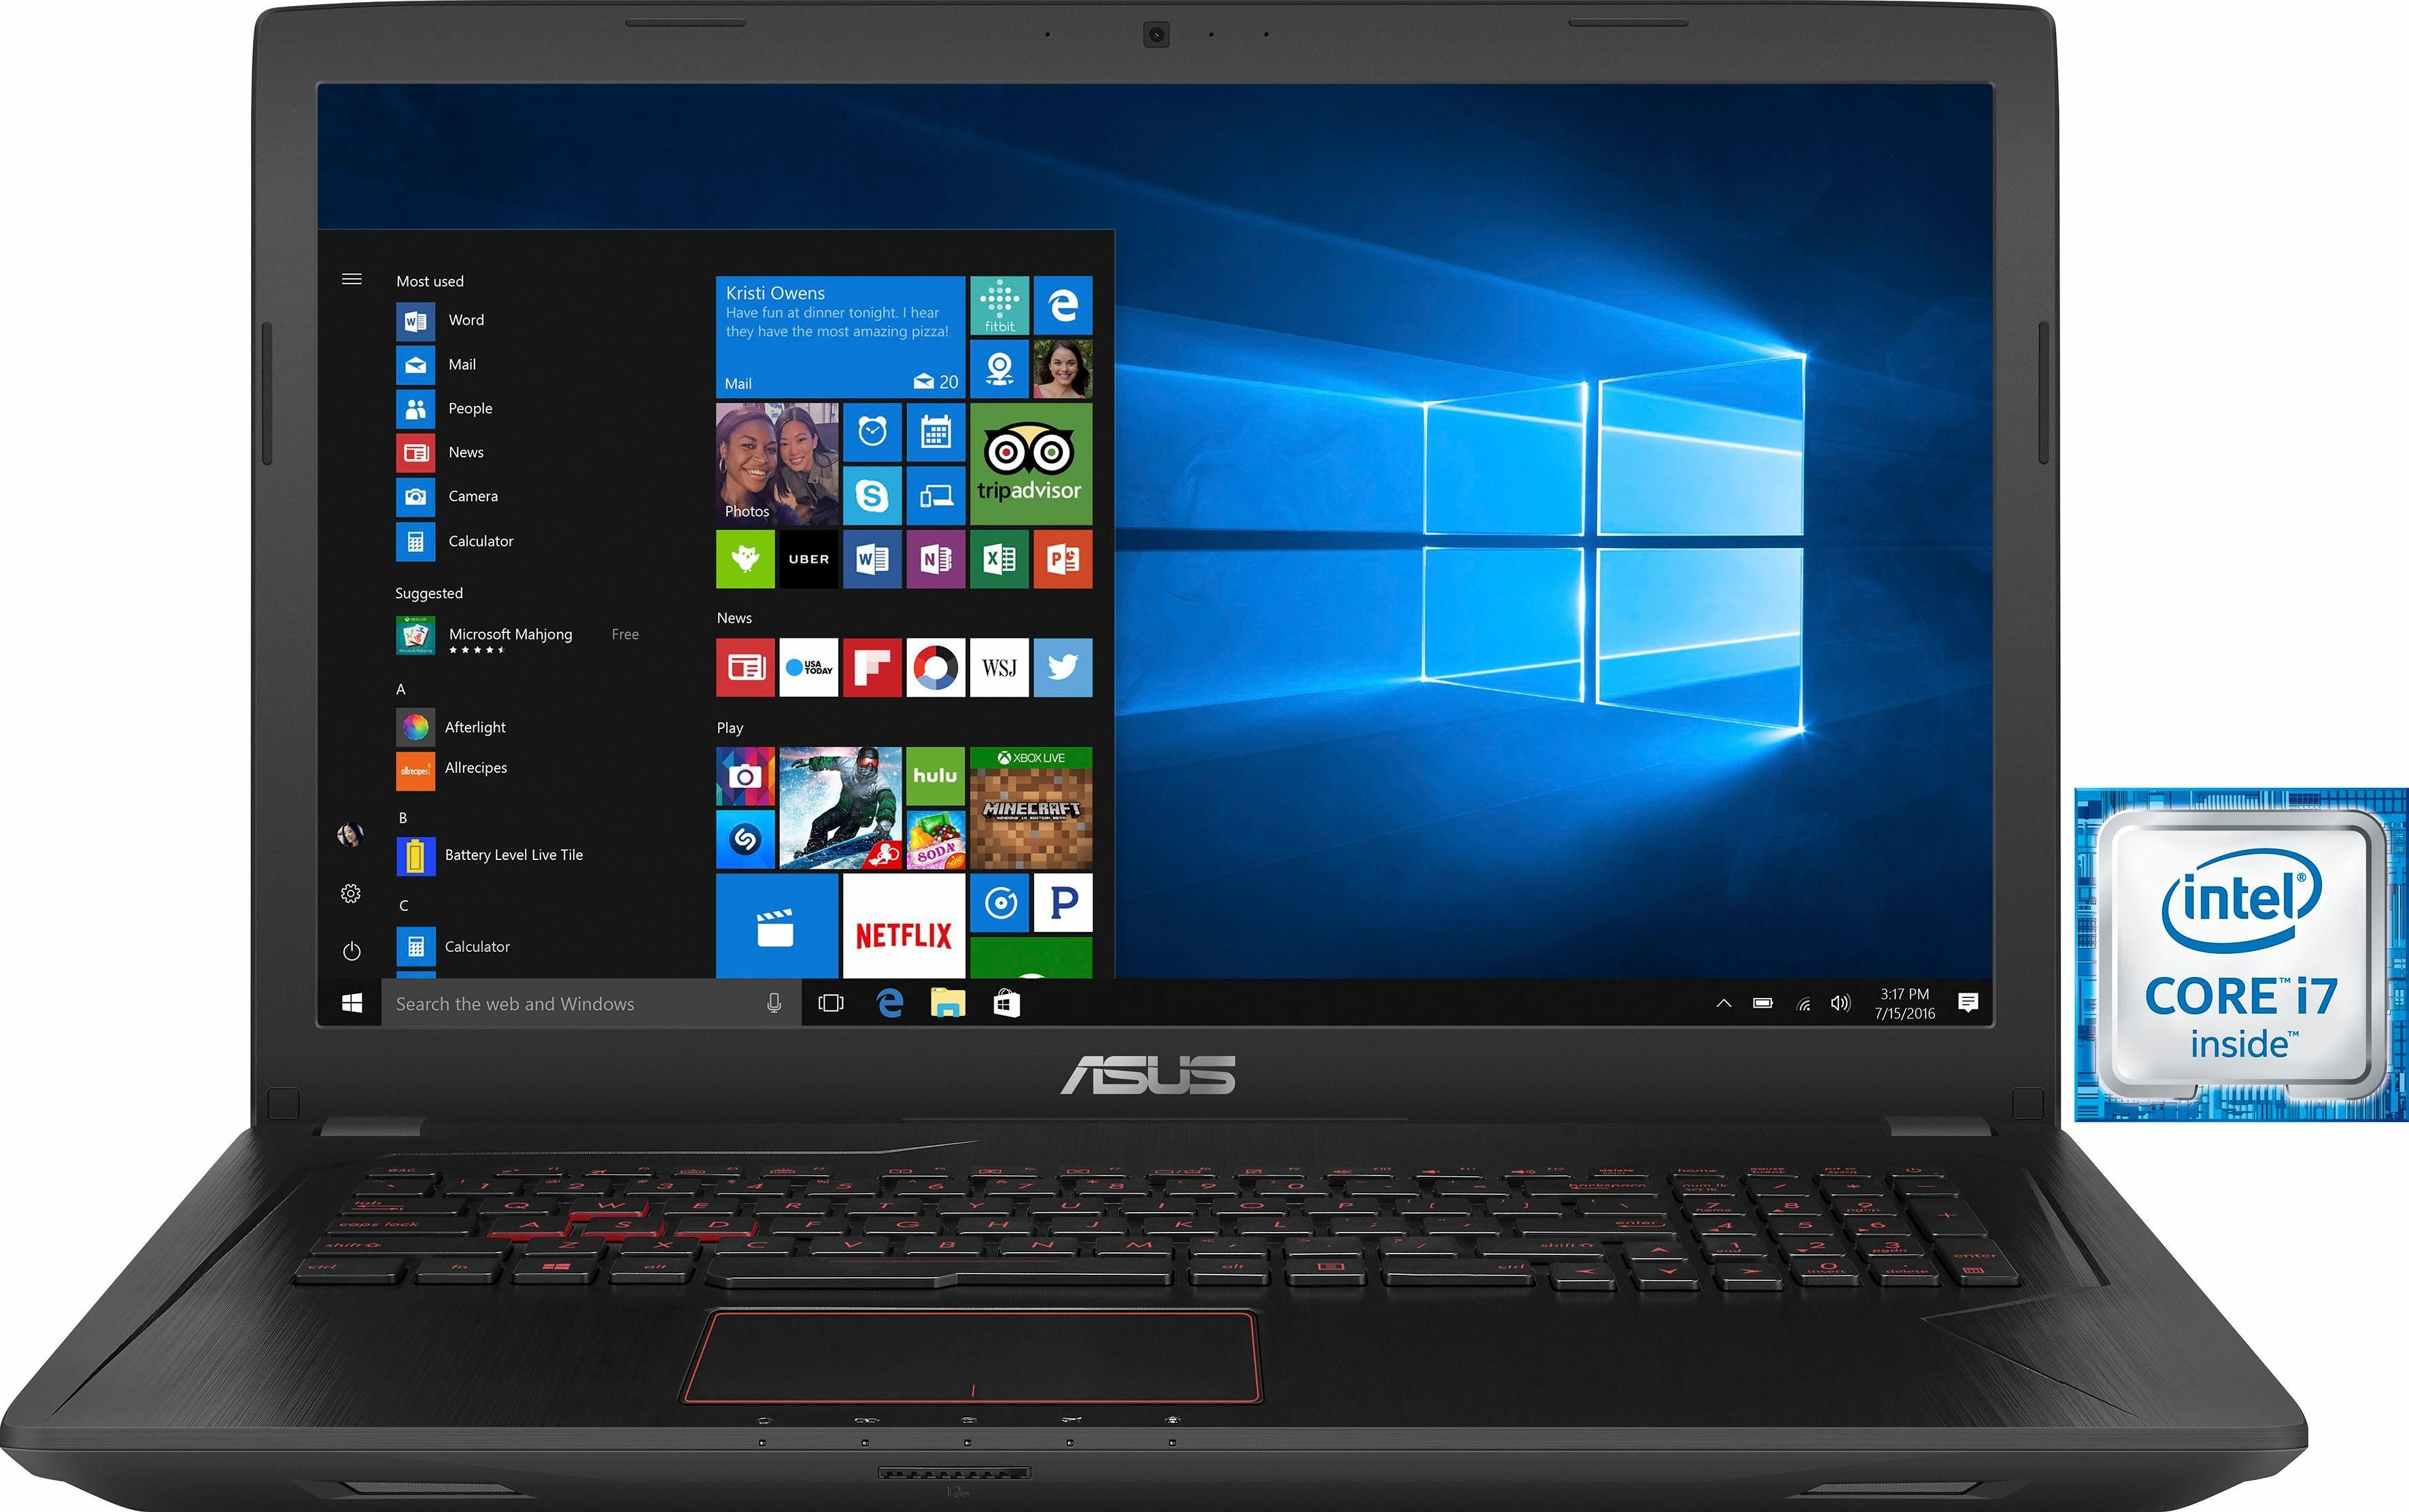 Asus FX753VE-GC108T Notebook, Intel® Core™ i7, 43,9 cm (17,3 Zoll), 1128 GB Speicher